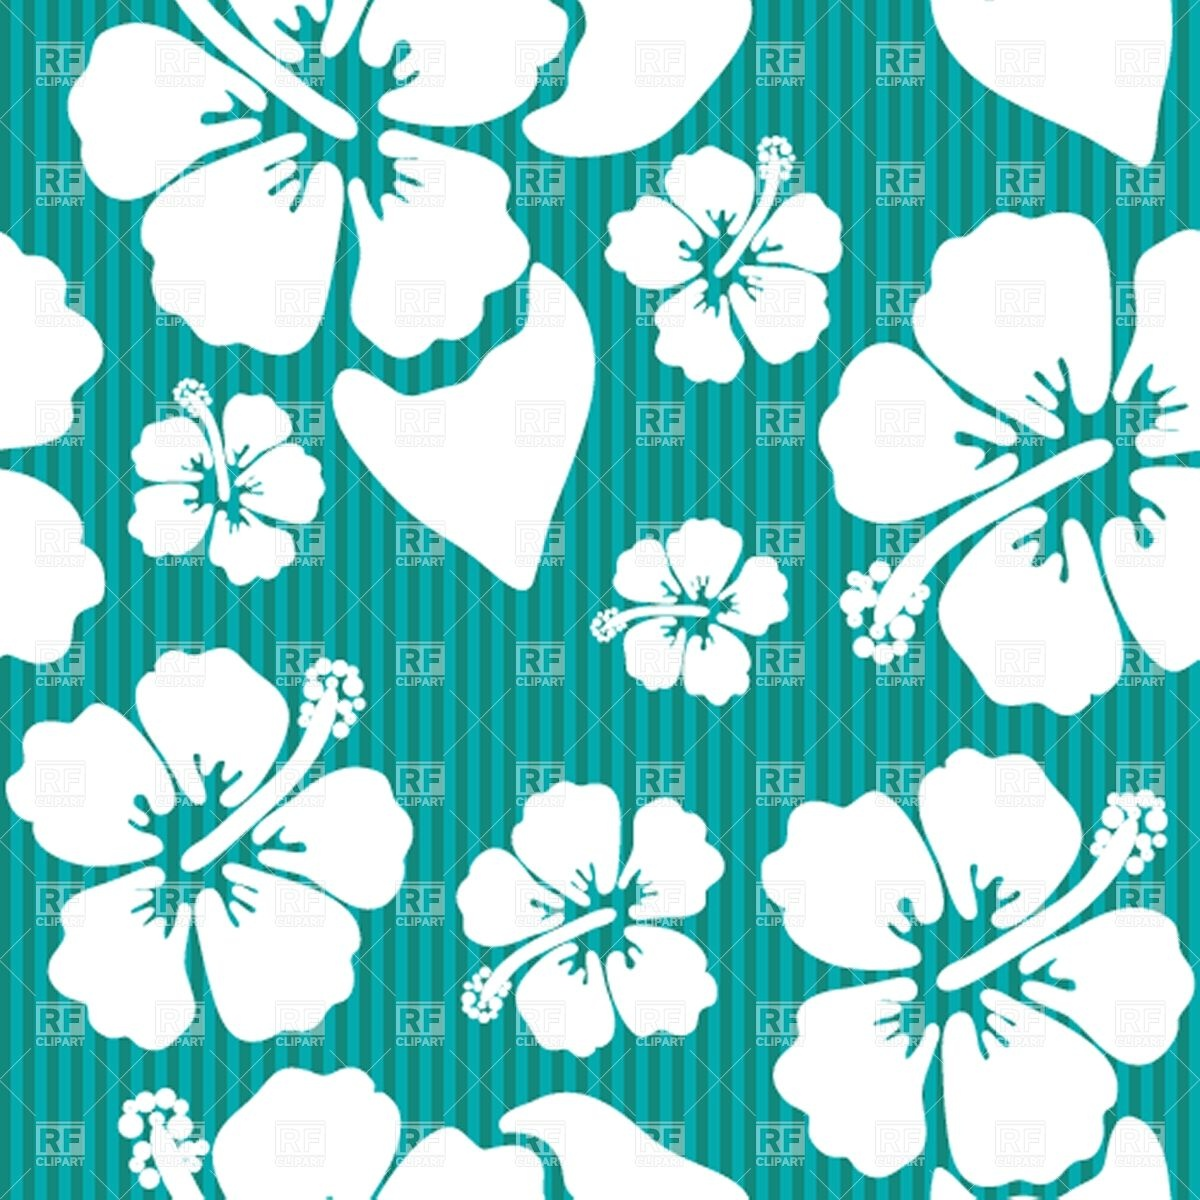 Free vector flower file page 12 newdesignfile 6 hawaiian vector flower patterns images izmirmasajfo